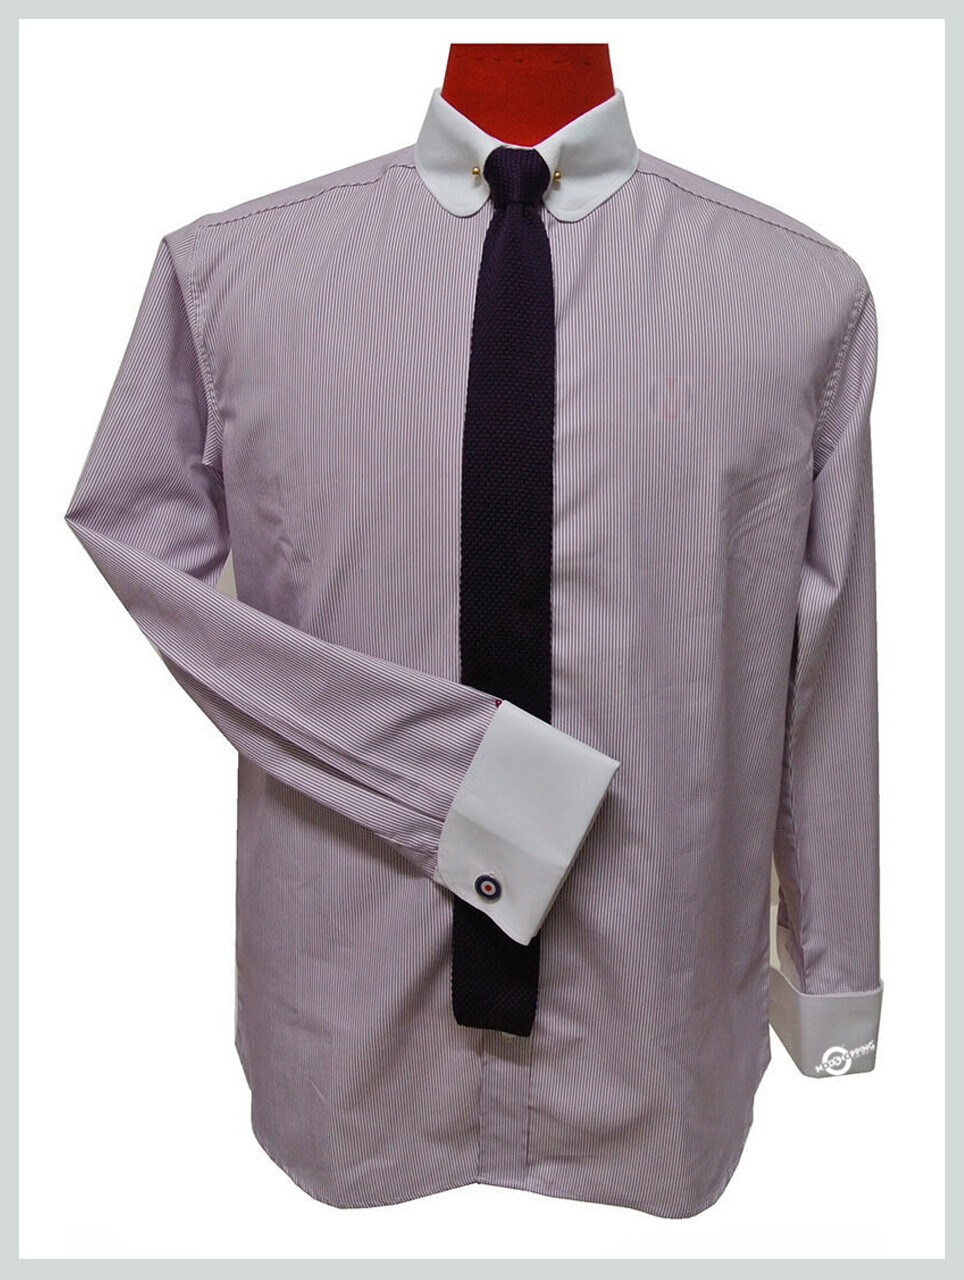 Mens Lilac Shirt| Penny Pin Collar Vintage Shirt For Men